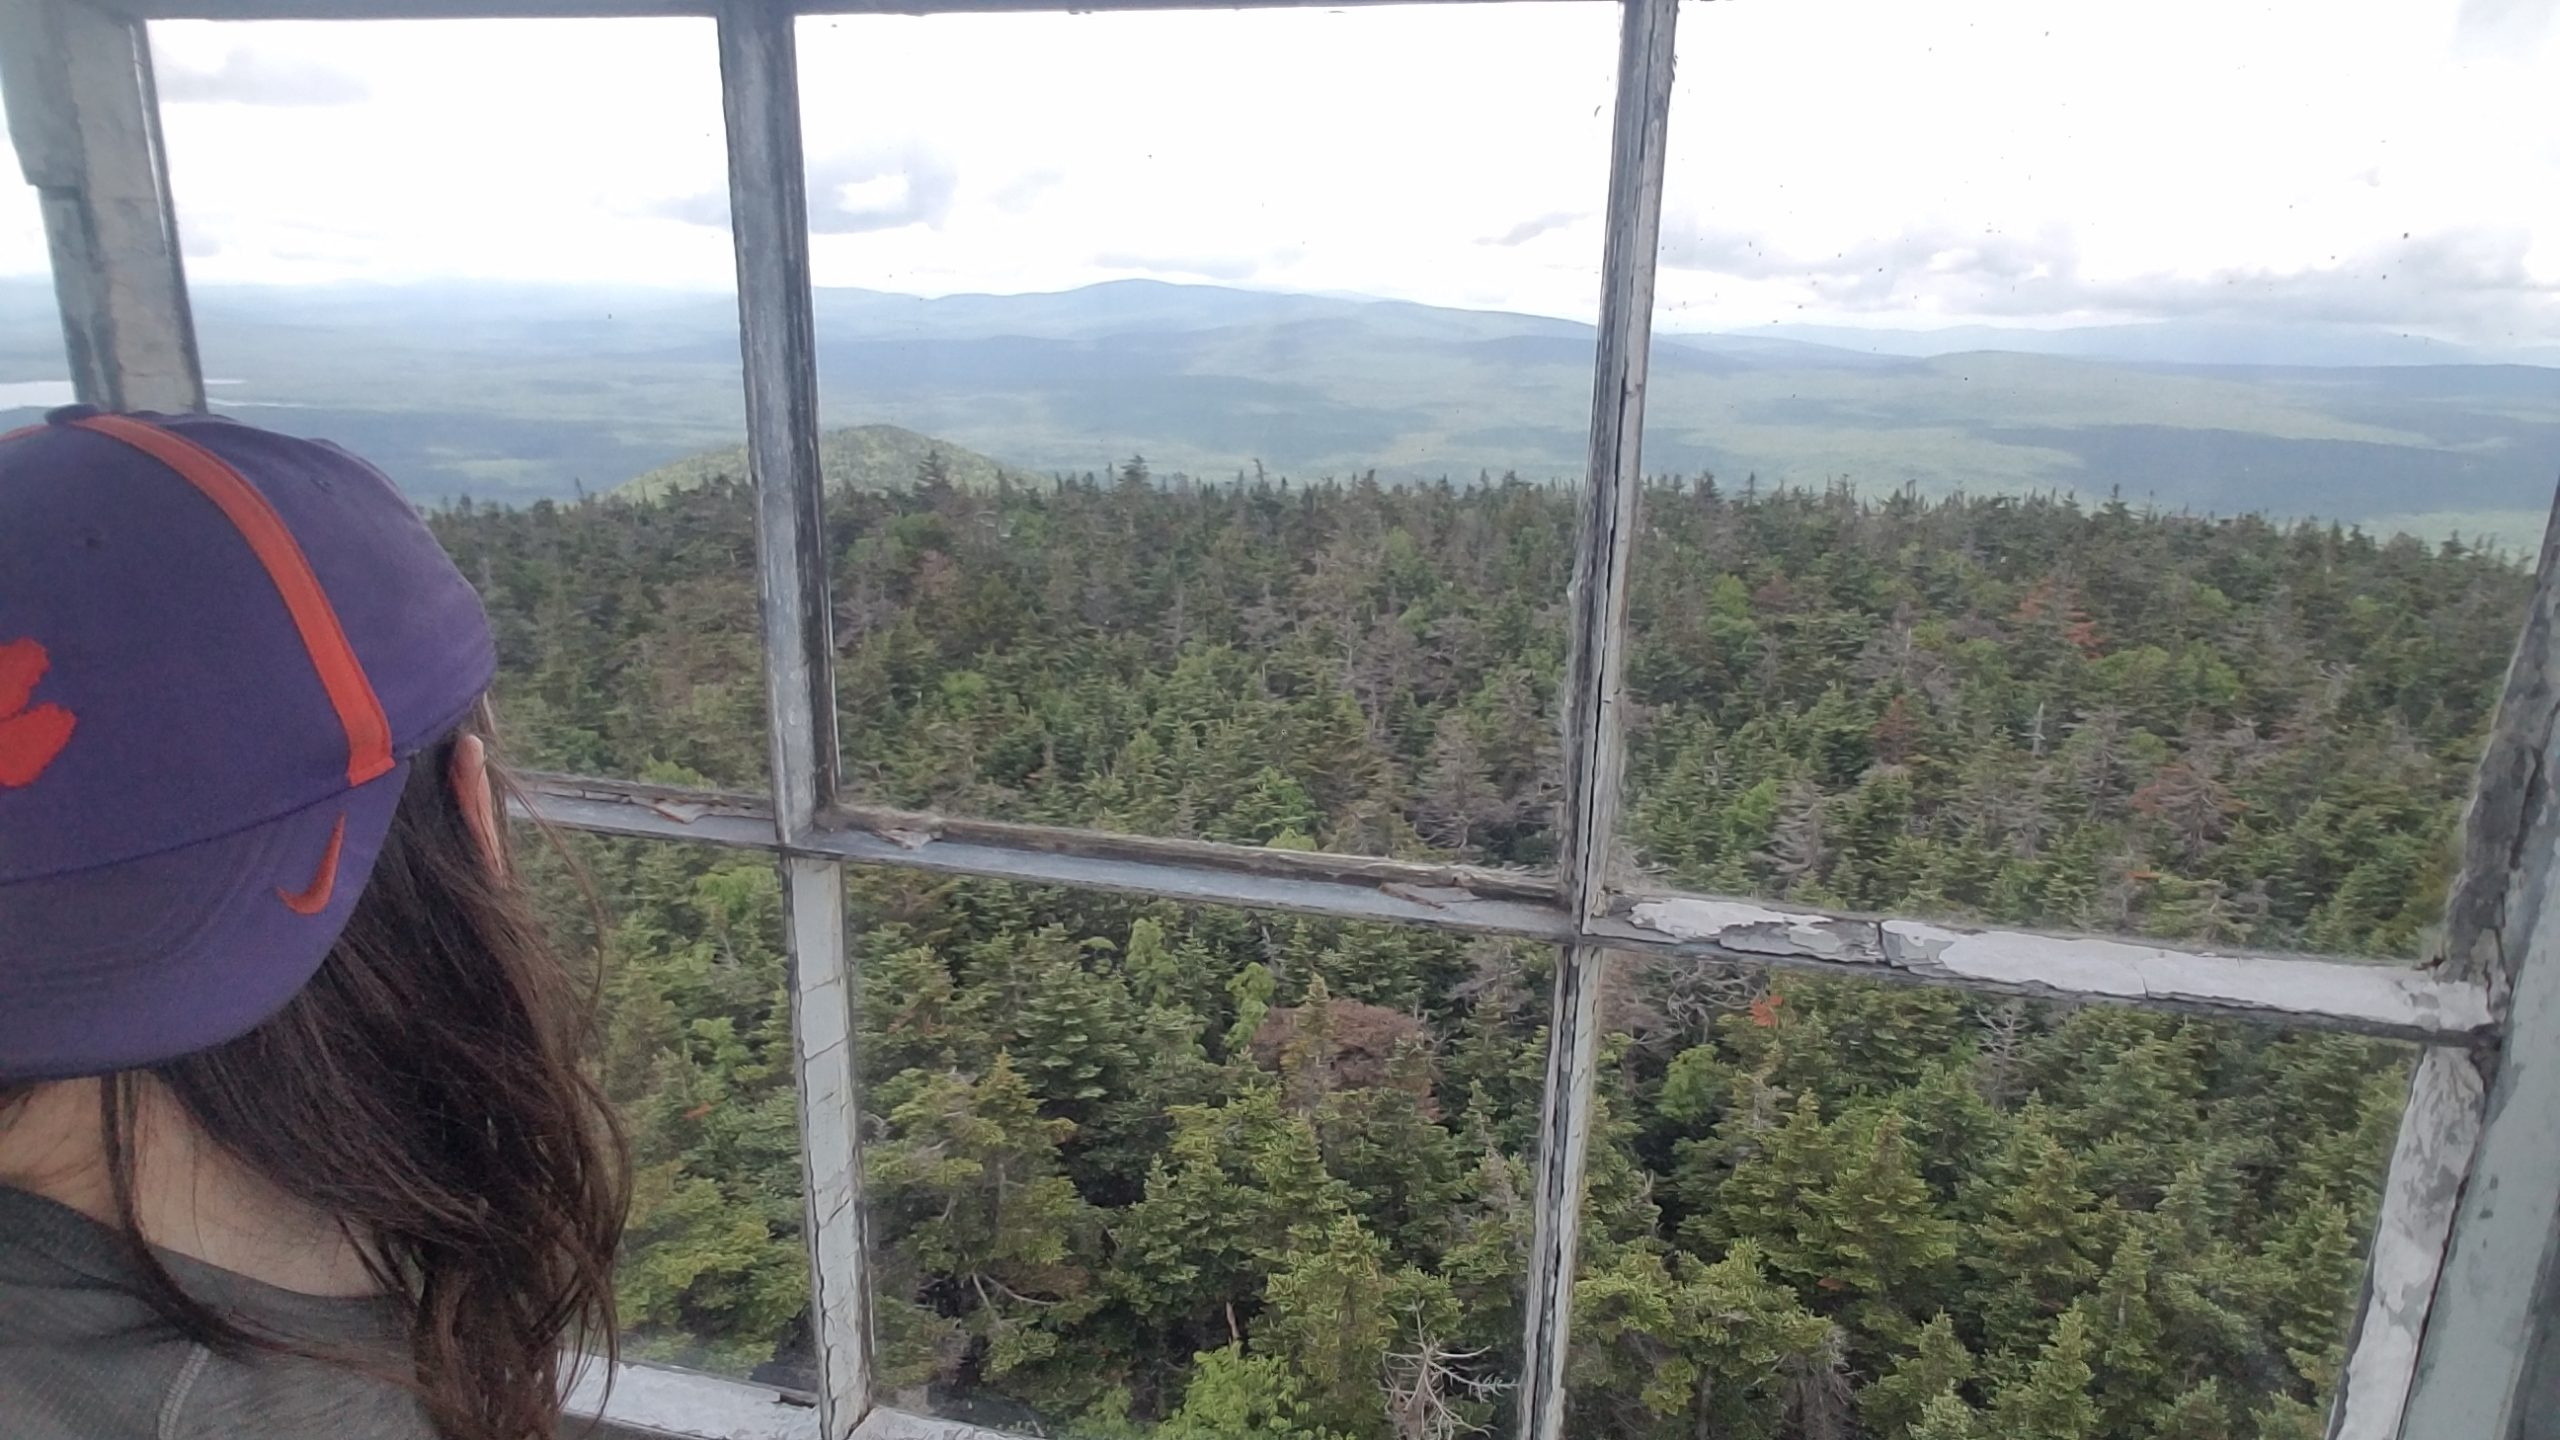 Standing inside Stratton fire tower